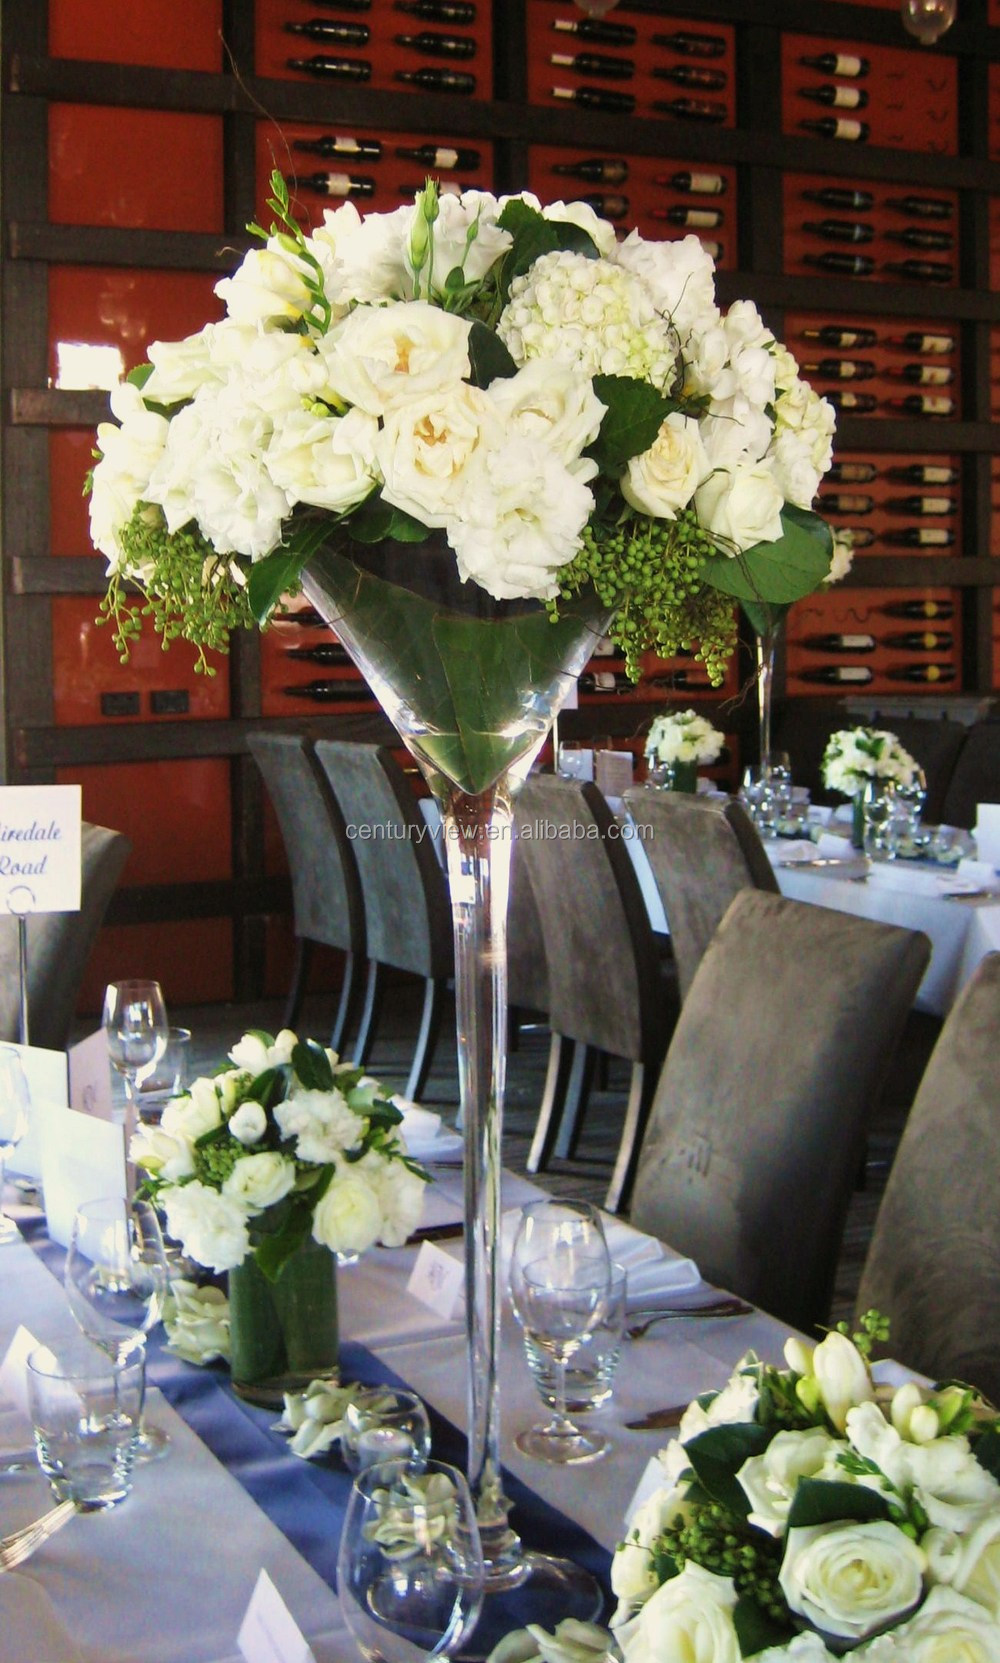 Long stemmed wholesale martini glass vases centerpieces